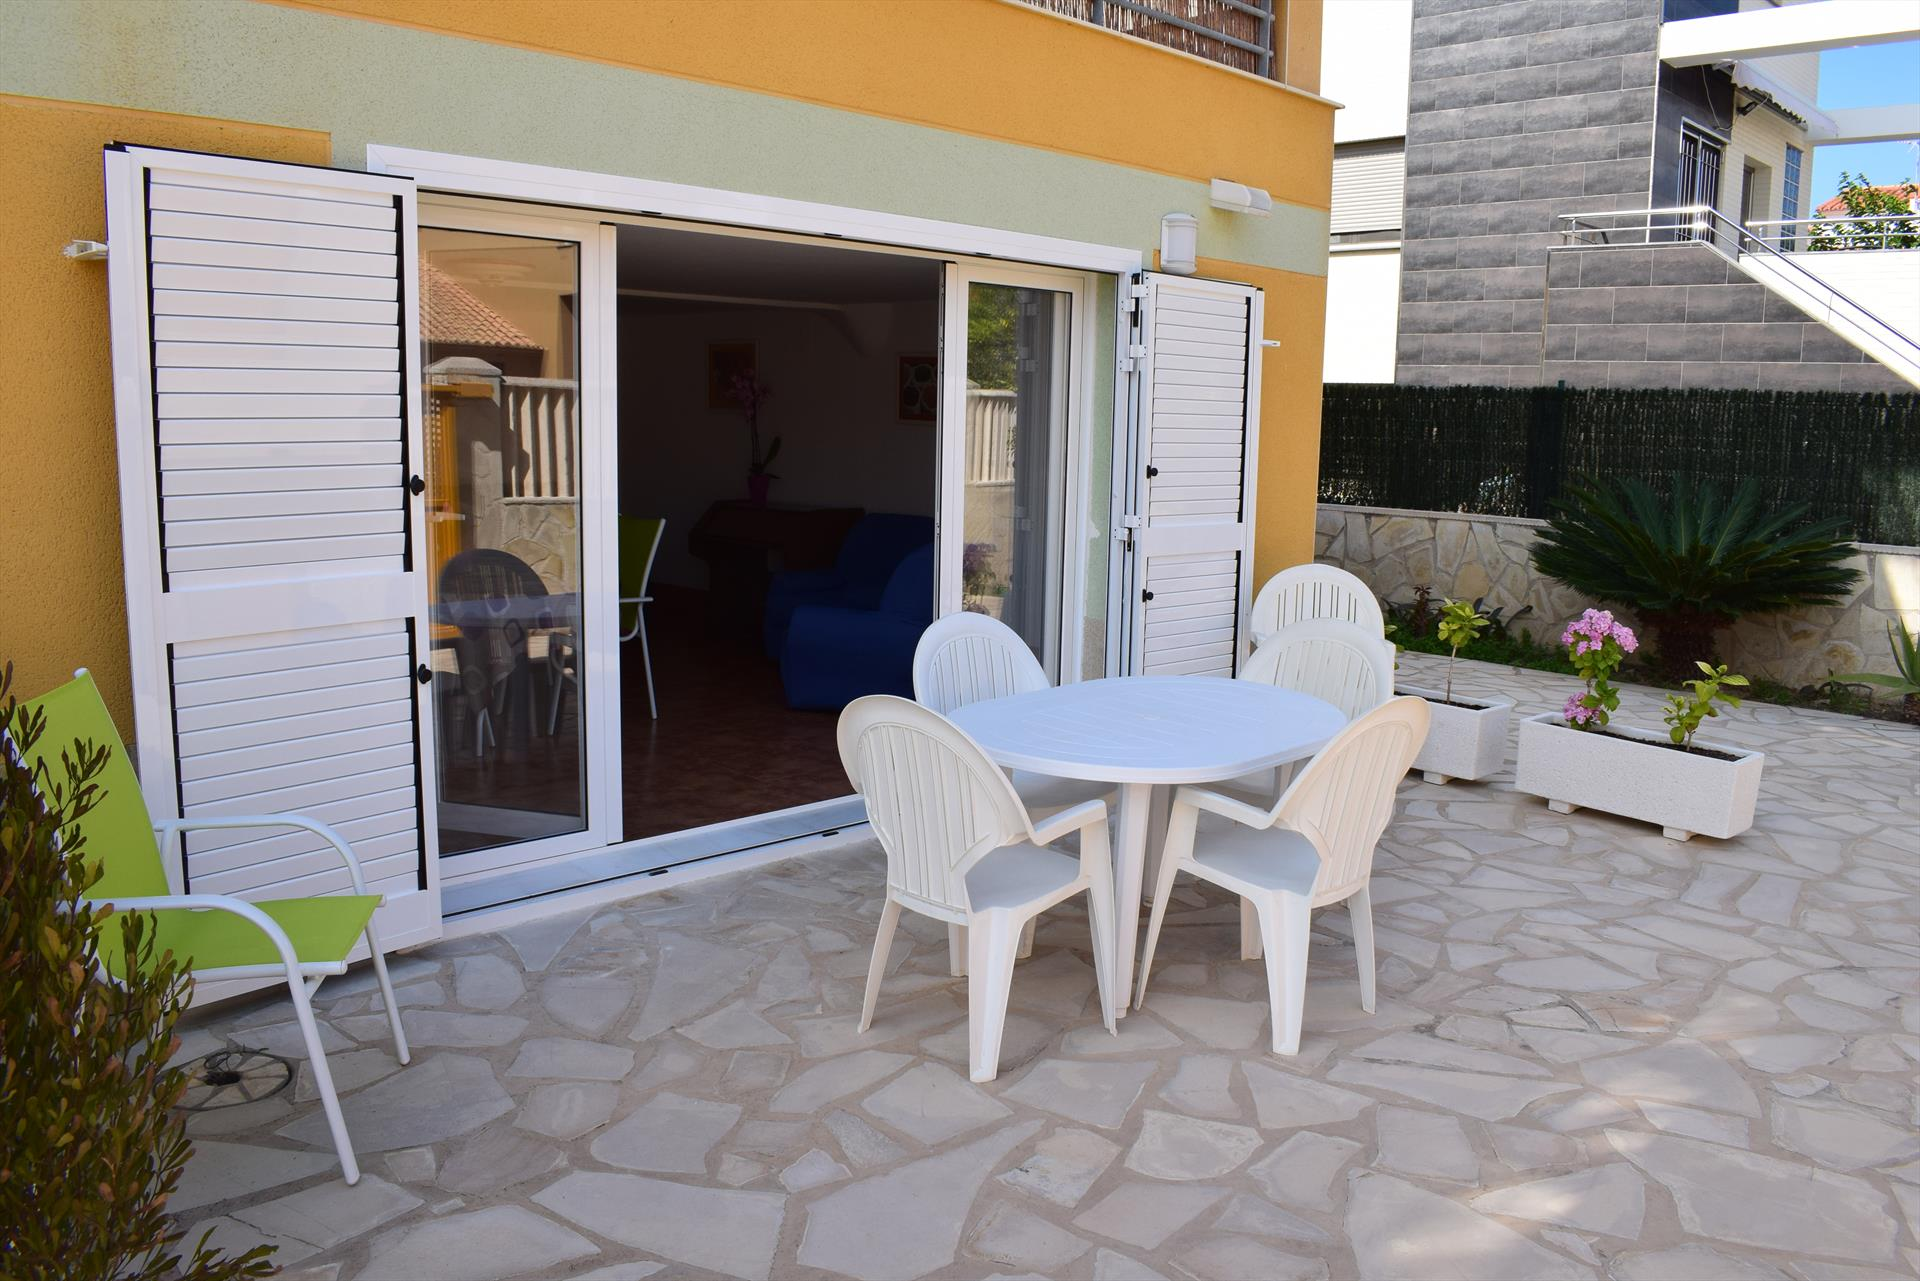 AP90 Playa Pau Pi, Beautiful and cheerful apartment in Oliva, on the Costa Blanca, Spain  with communal pool for 6 persons.....